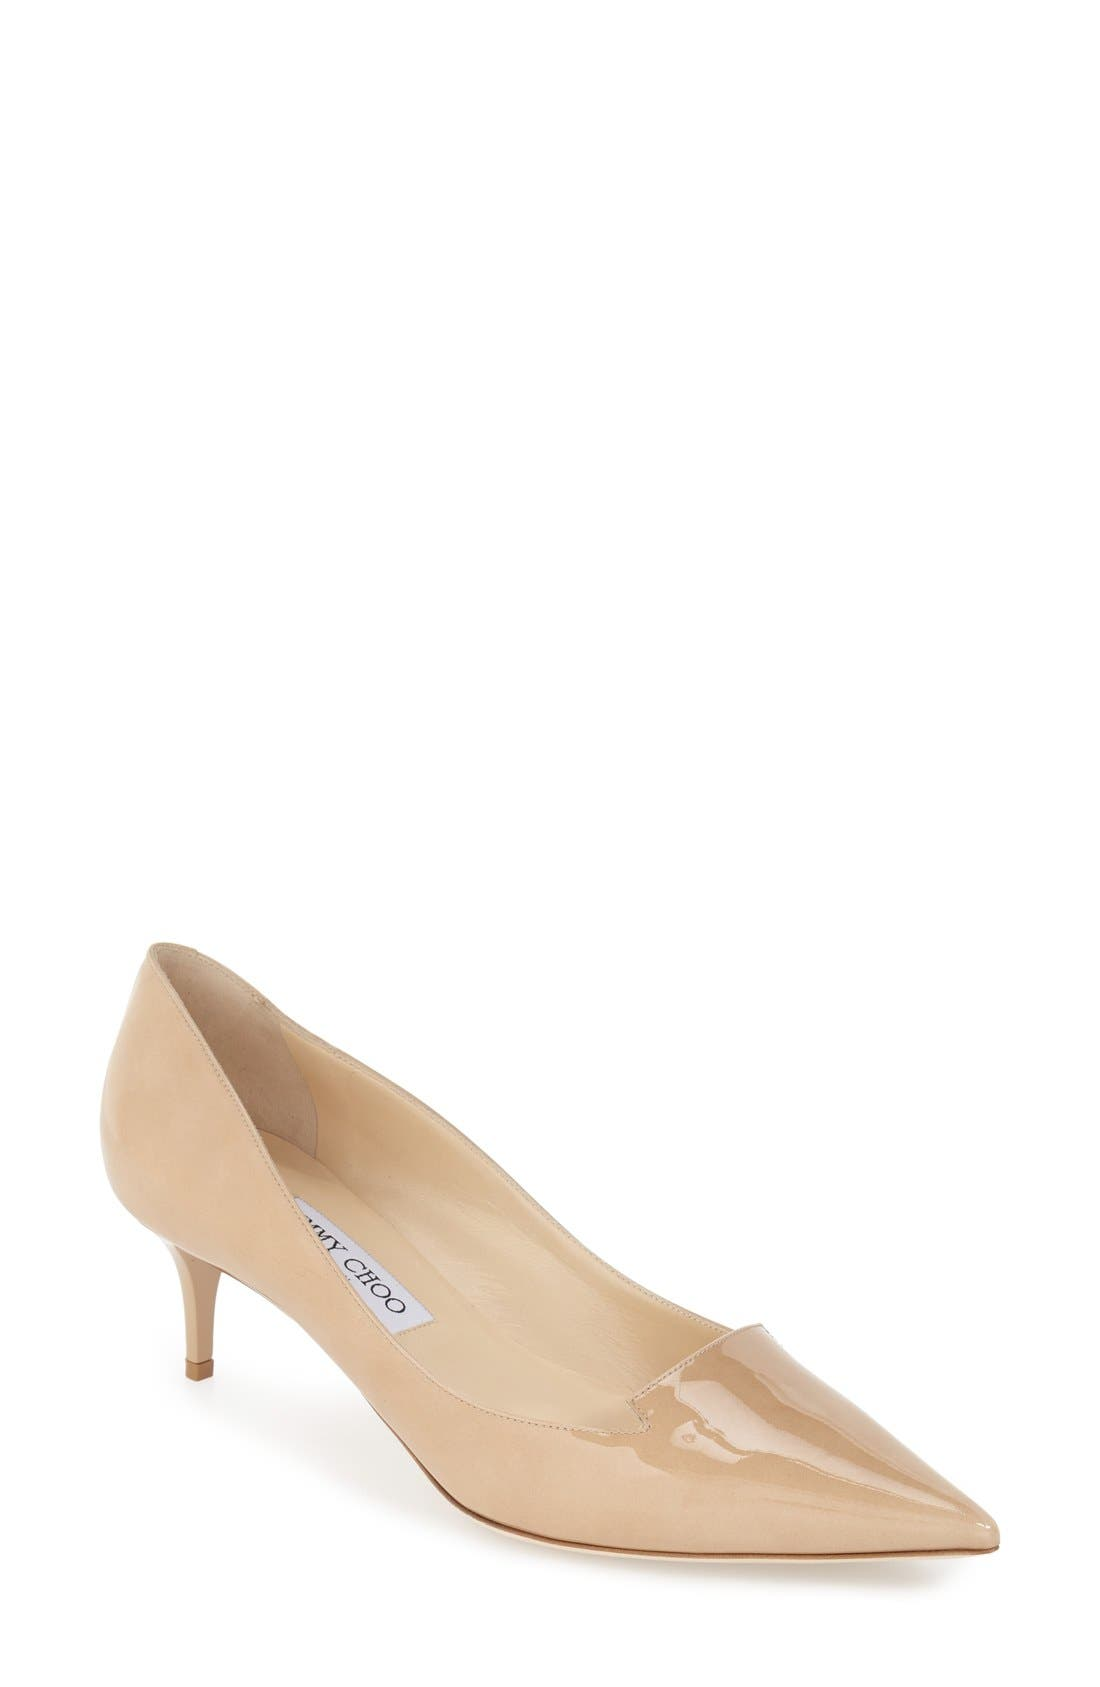 Alternate Image 1 Selected - Jimmy Choo 'Allure' Pointy Toe Pump (Women)